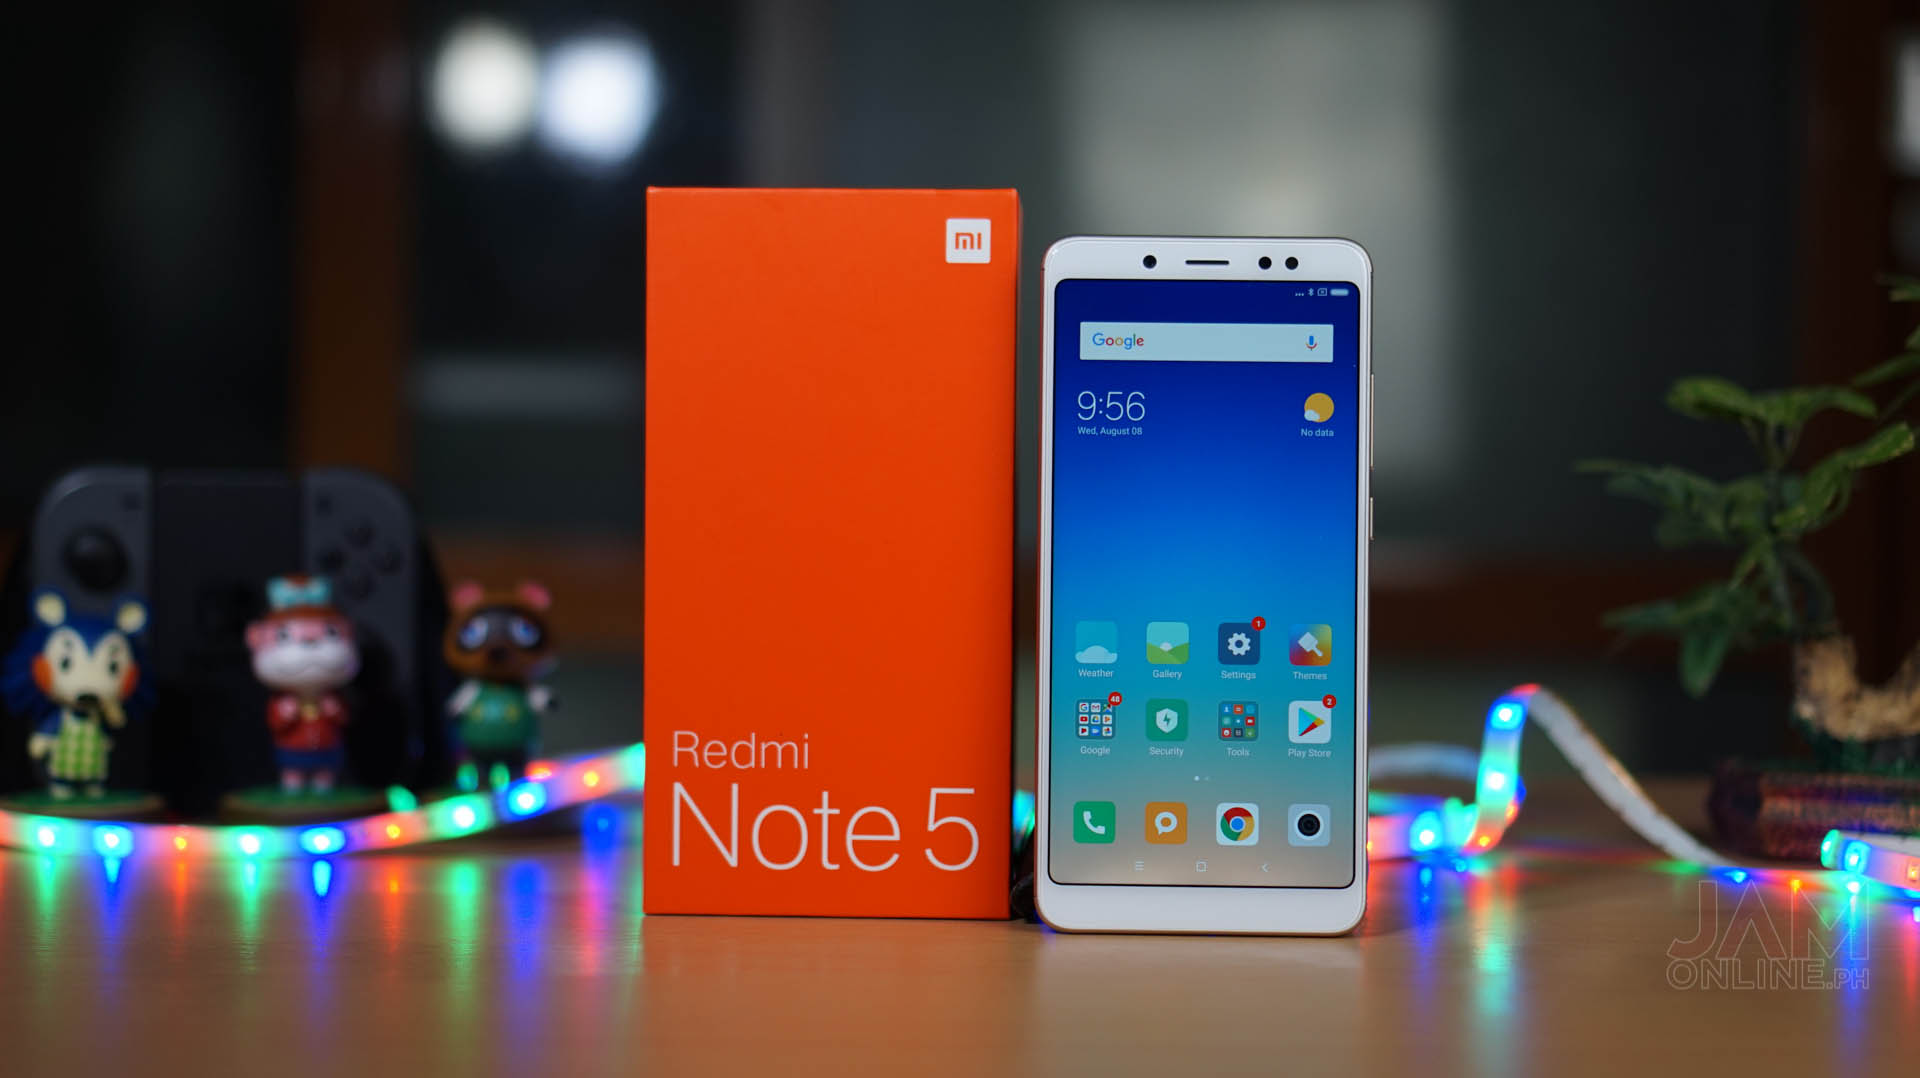 Xiaomi Redmi Note 5 Review • Jam Online